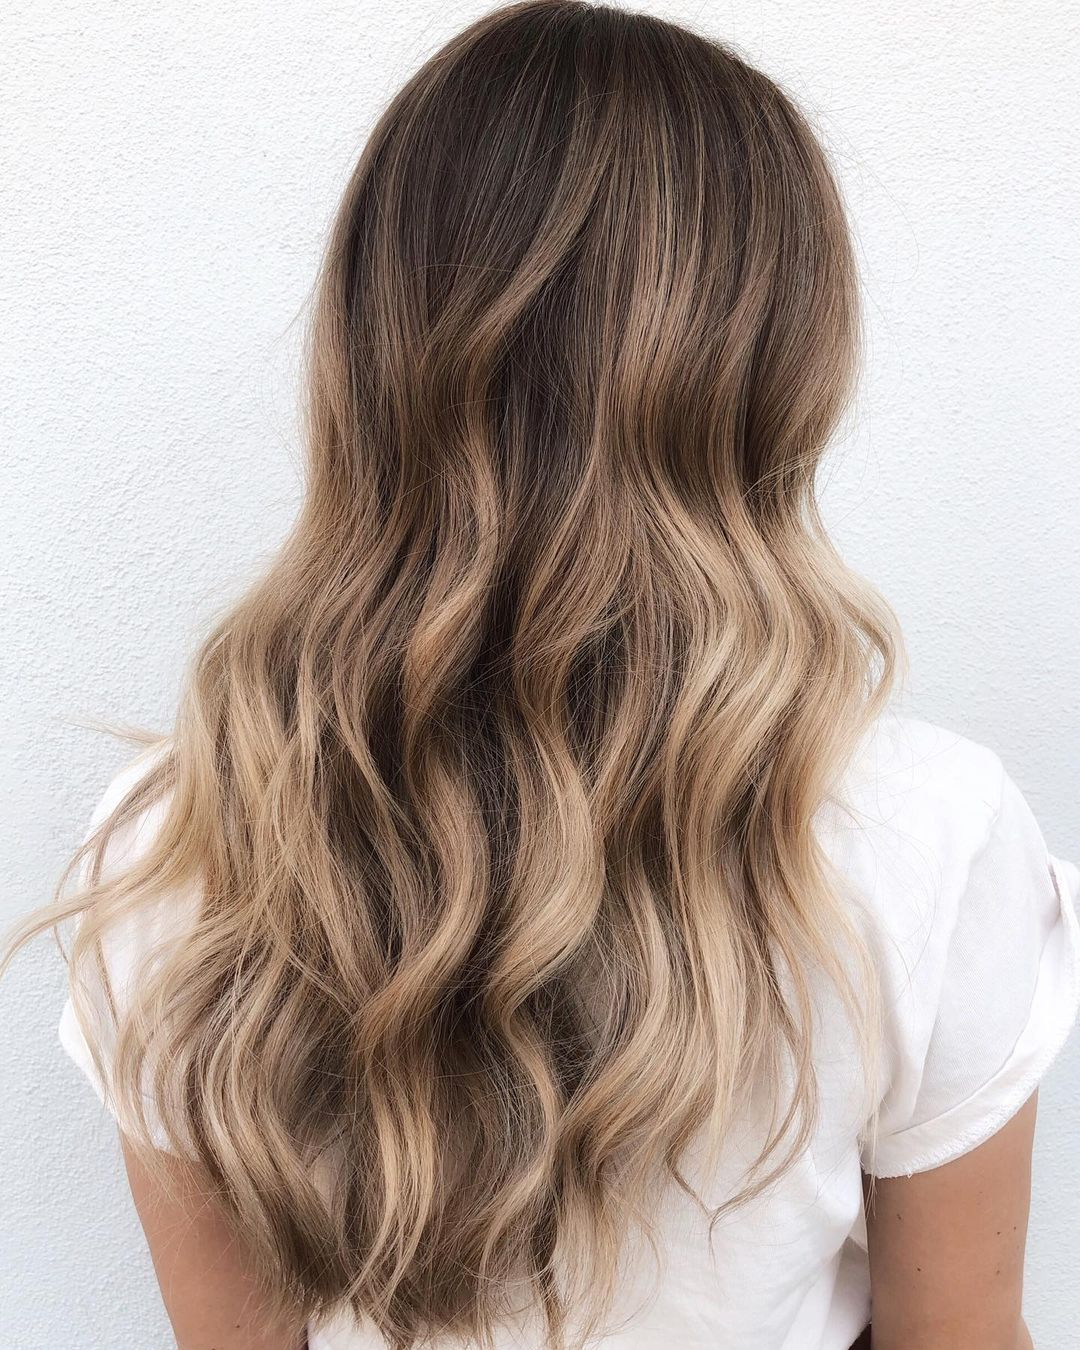 Long Hair with Melted Bronde Balayage